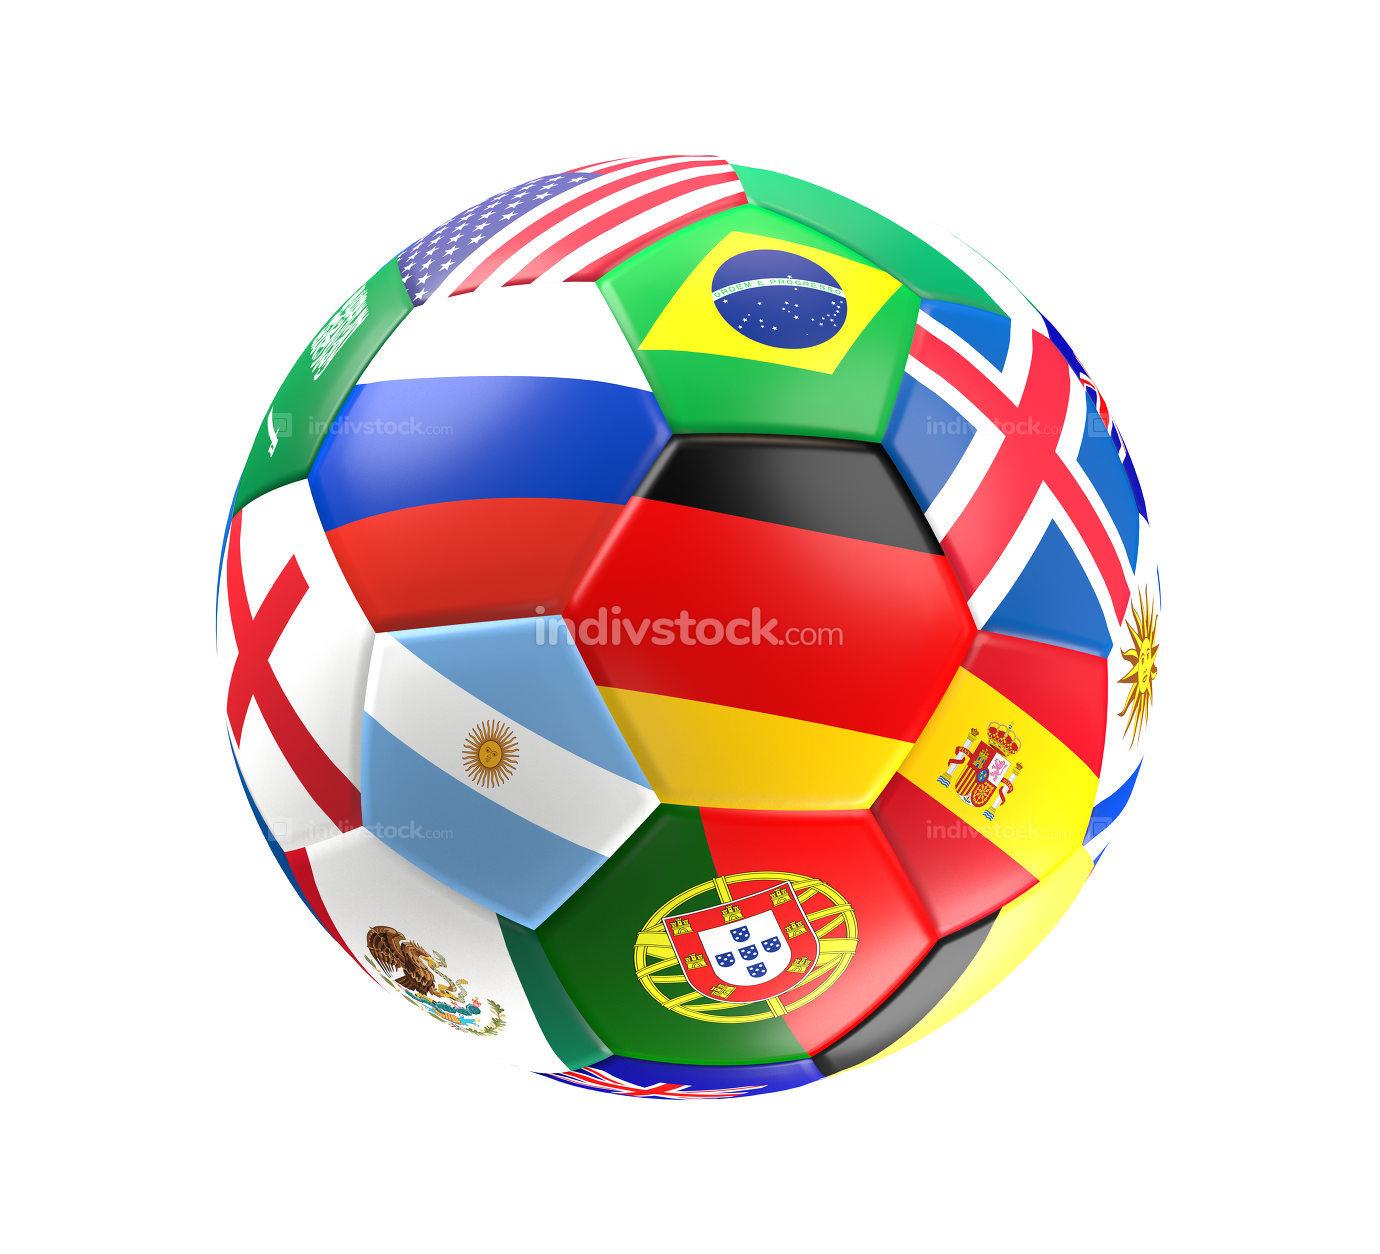 colorful soccer ball in goal 3D rendering